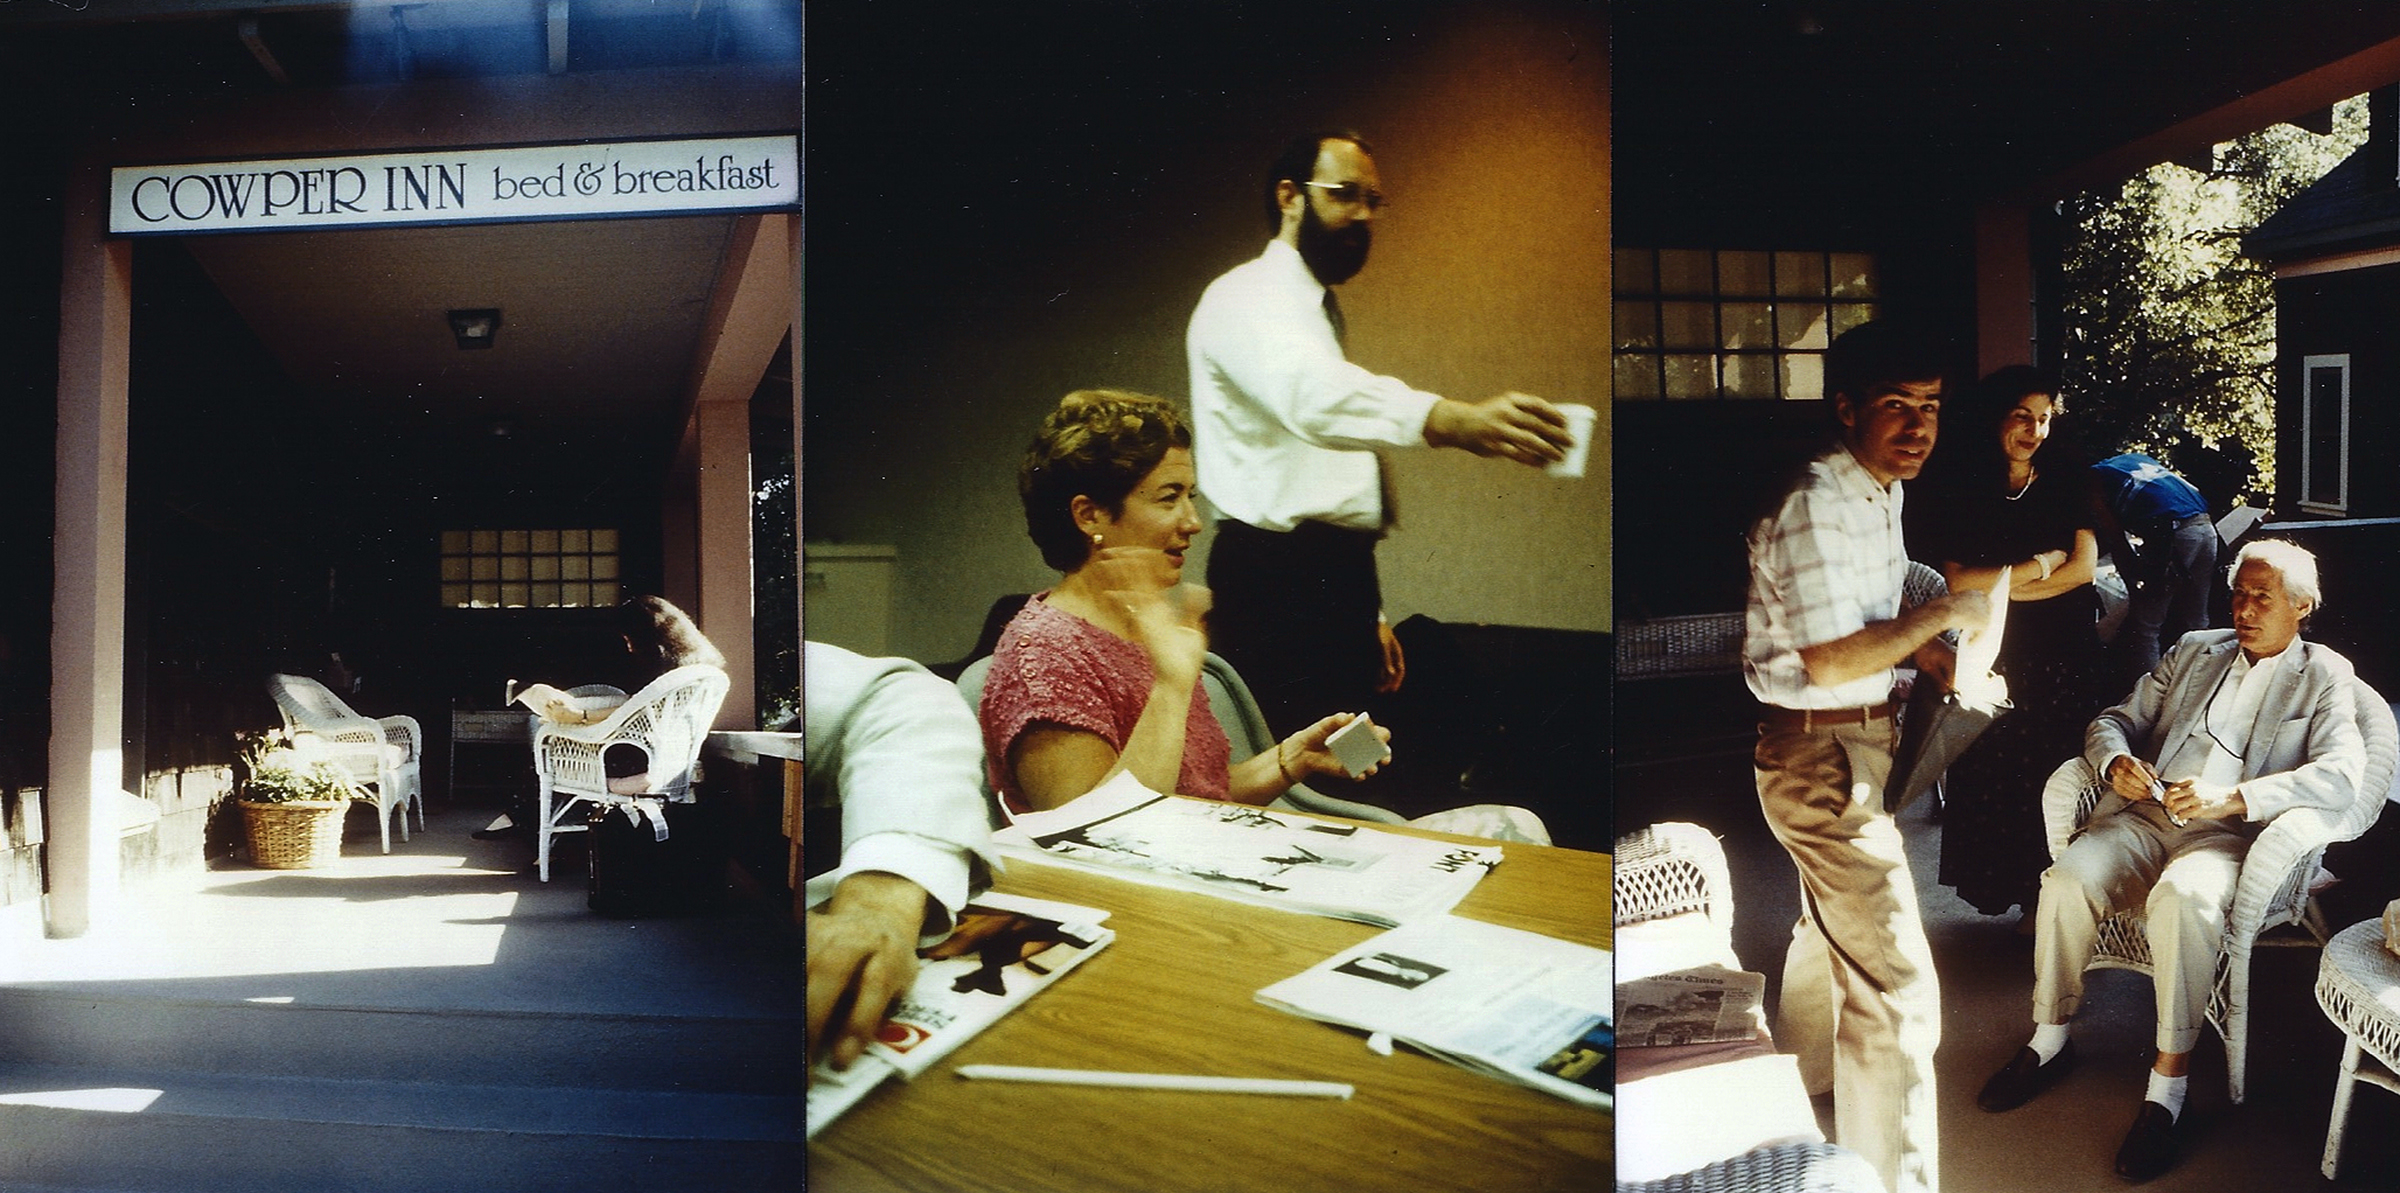 """According to Spiekermann: """"These three pictures are a scan of very bad and very small color prints from photos I took back in 1988 or 1989."""" Far left: The Type Board meeting place at the Cowper Inn in Palo Alto; center: Liz Bond and Sumner Stone; far right, pictured from left: Type Board members Stephen Harvard, Louise Fili, and Jack Stauffacher."""